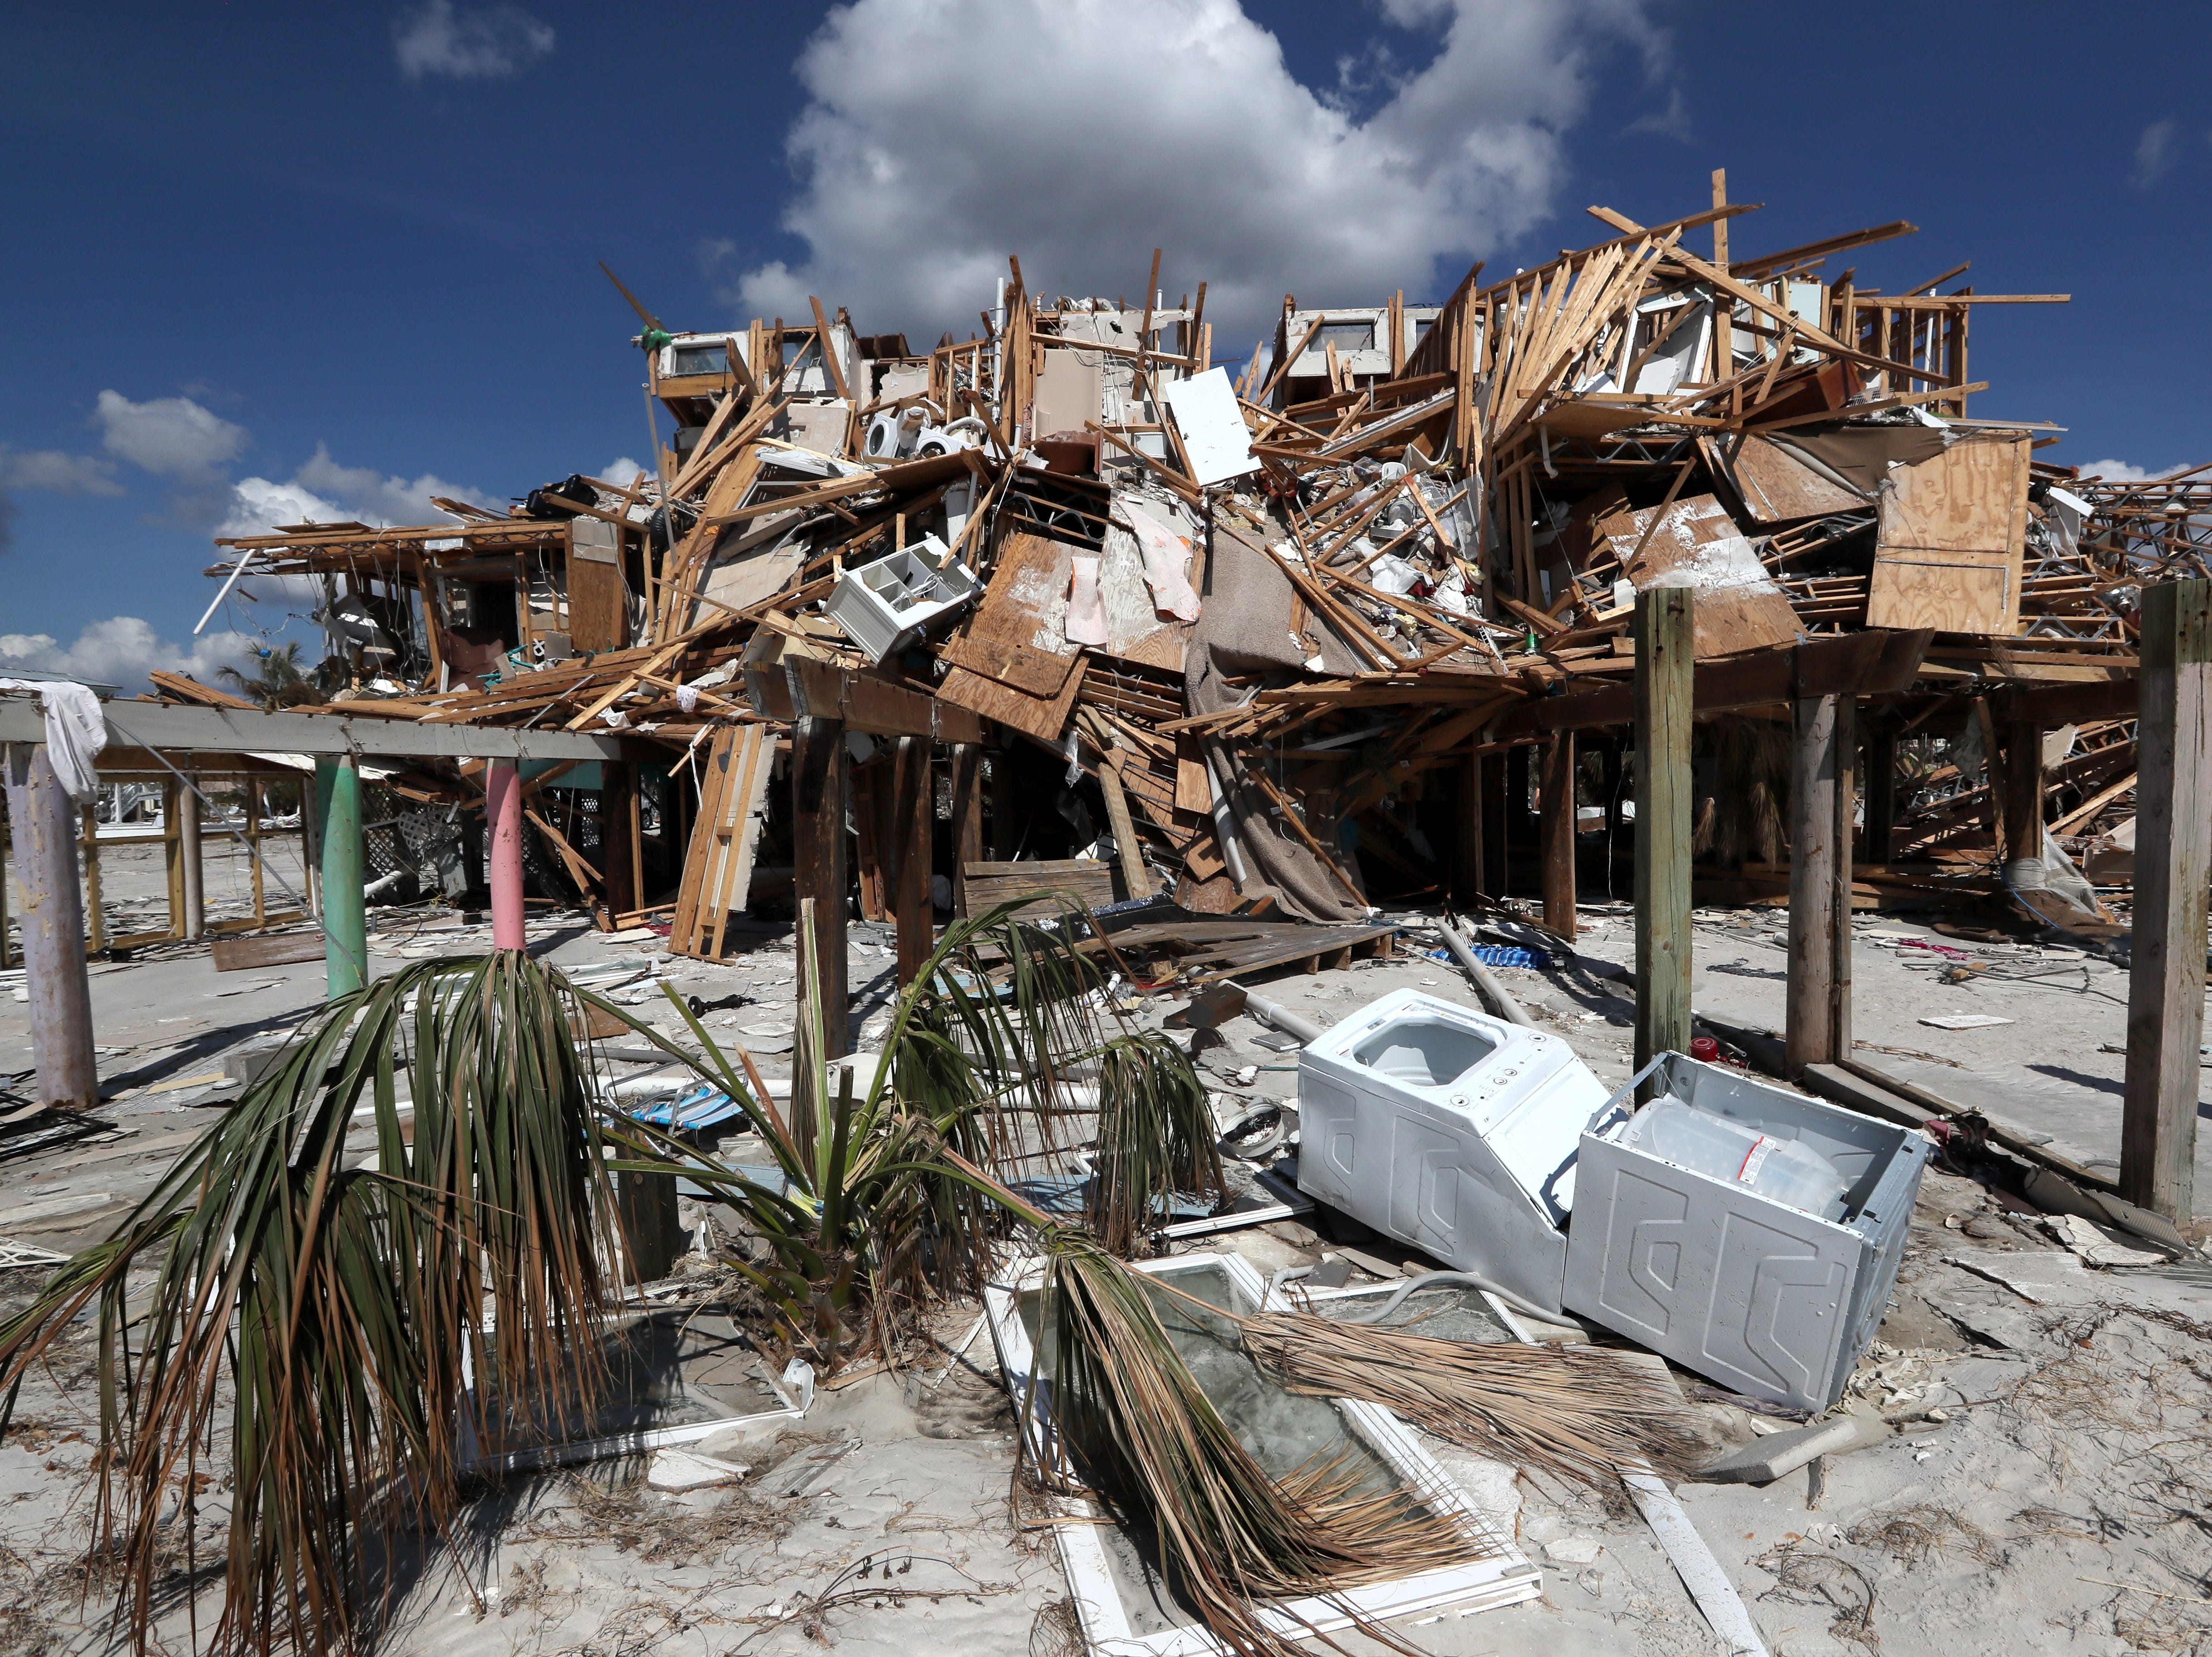 A mass of broken wood rest atop pilings on what was once home along the sand in Mexico Beach on Wednesday, Oct. 17, 2018, one week after Hurricane Michael ripped through the coastal Florida town.